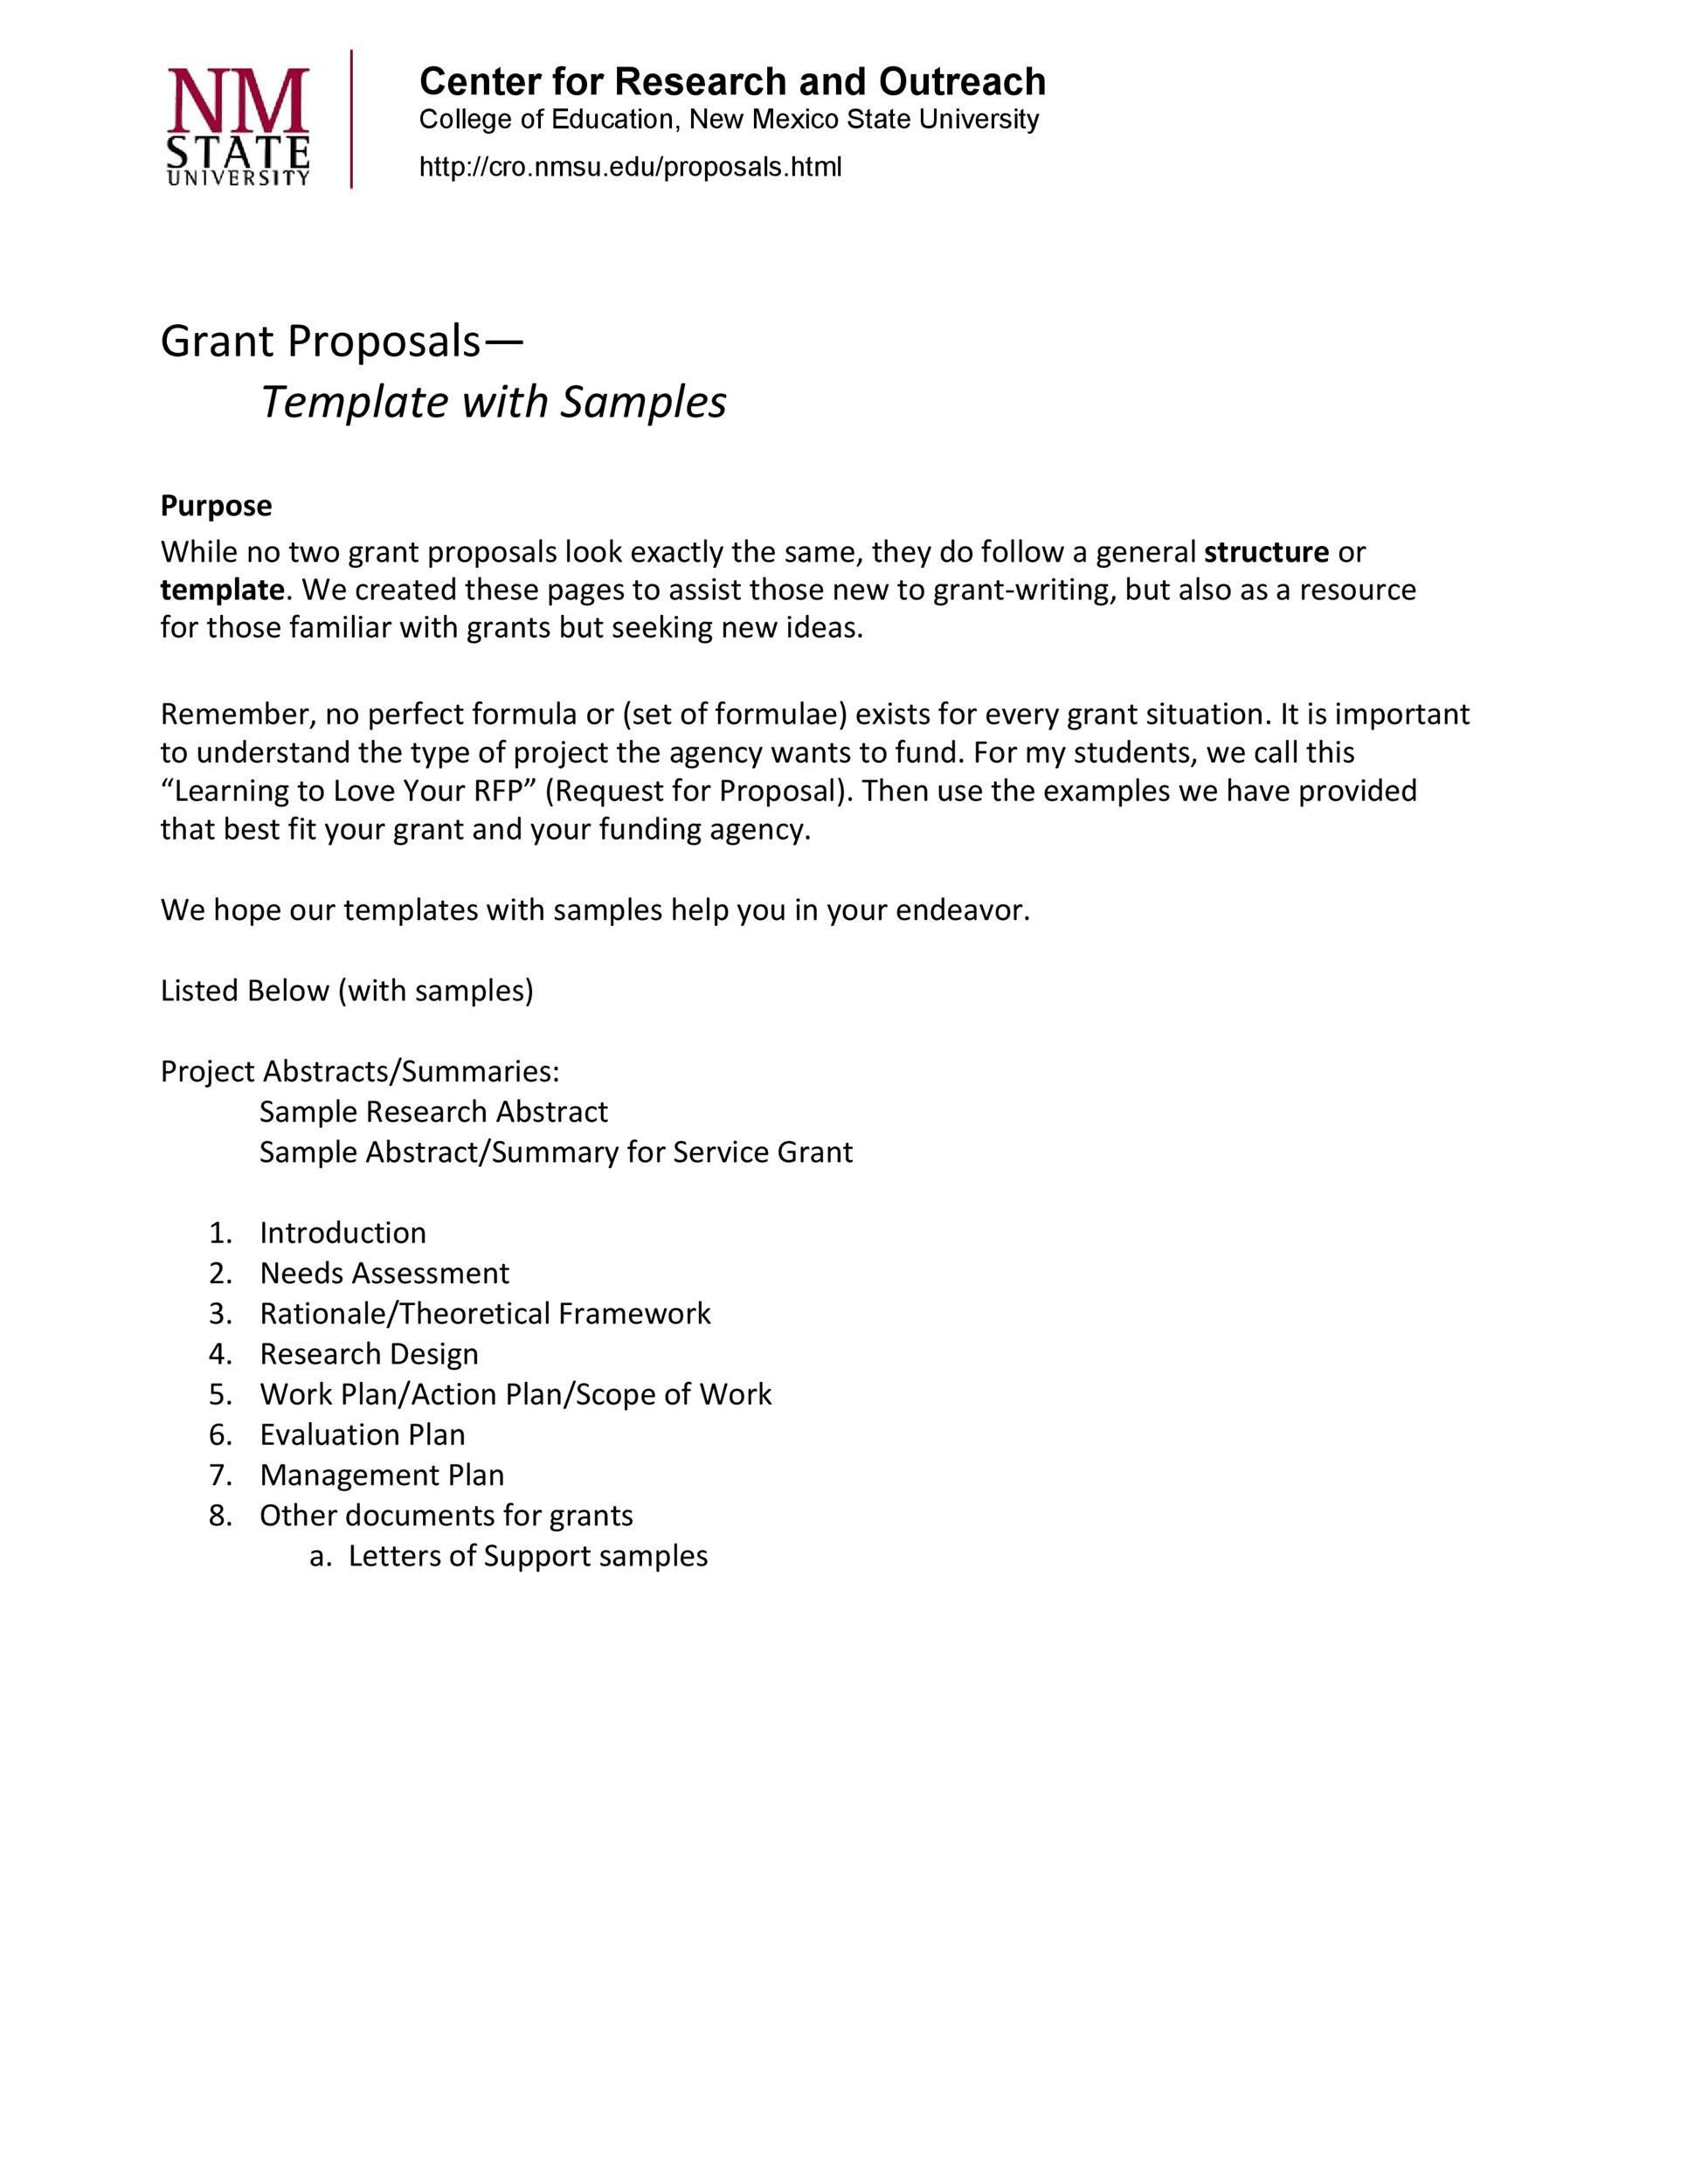 40+ Grant Proposal Templates NSF, Non-Profit, Research - Template Lab